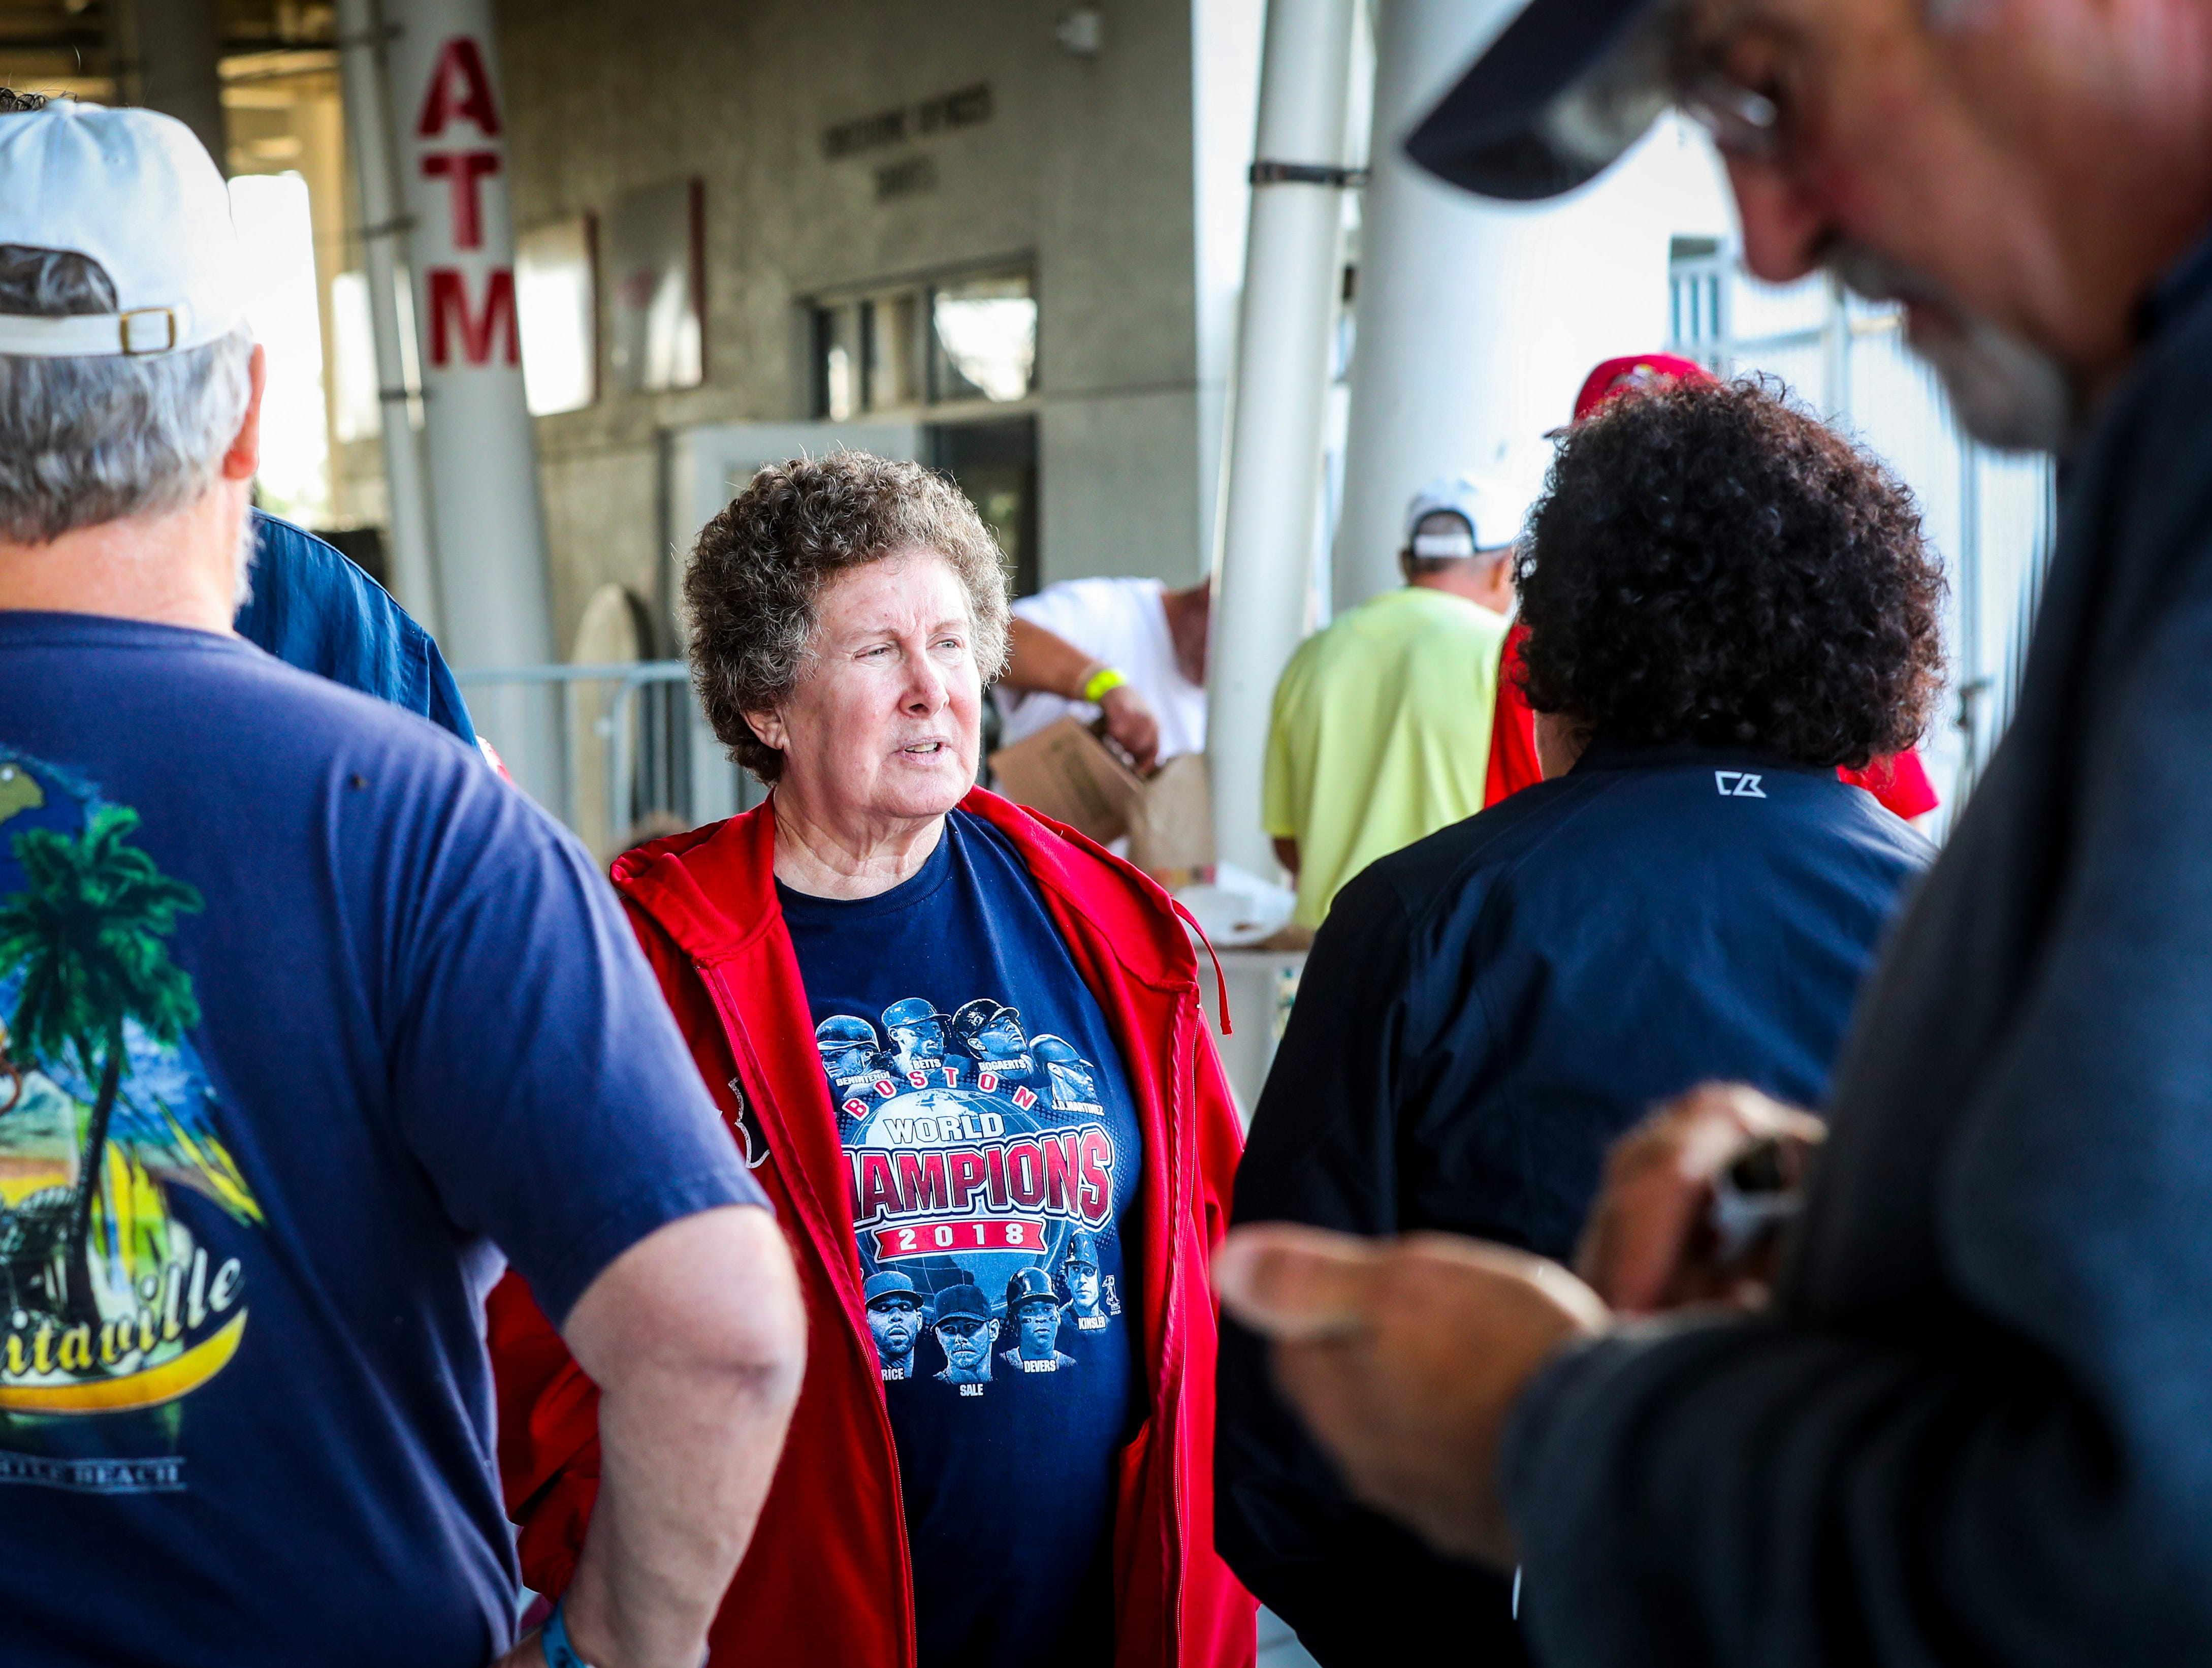 Ann Kristal made her second straight solo trip from Jacksonville. She visits with fellow fans. Boston fans gathered in line for spring training tickets. The crowd is excited for this season after the Red Sox won the World Series.